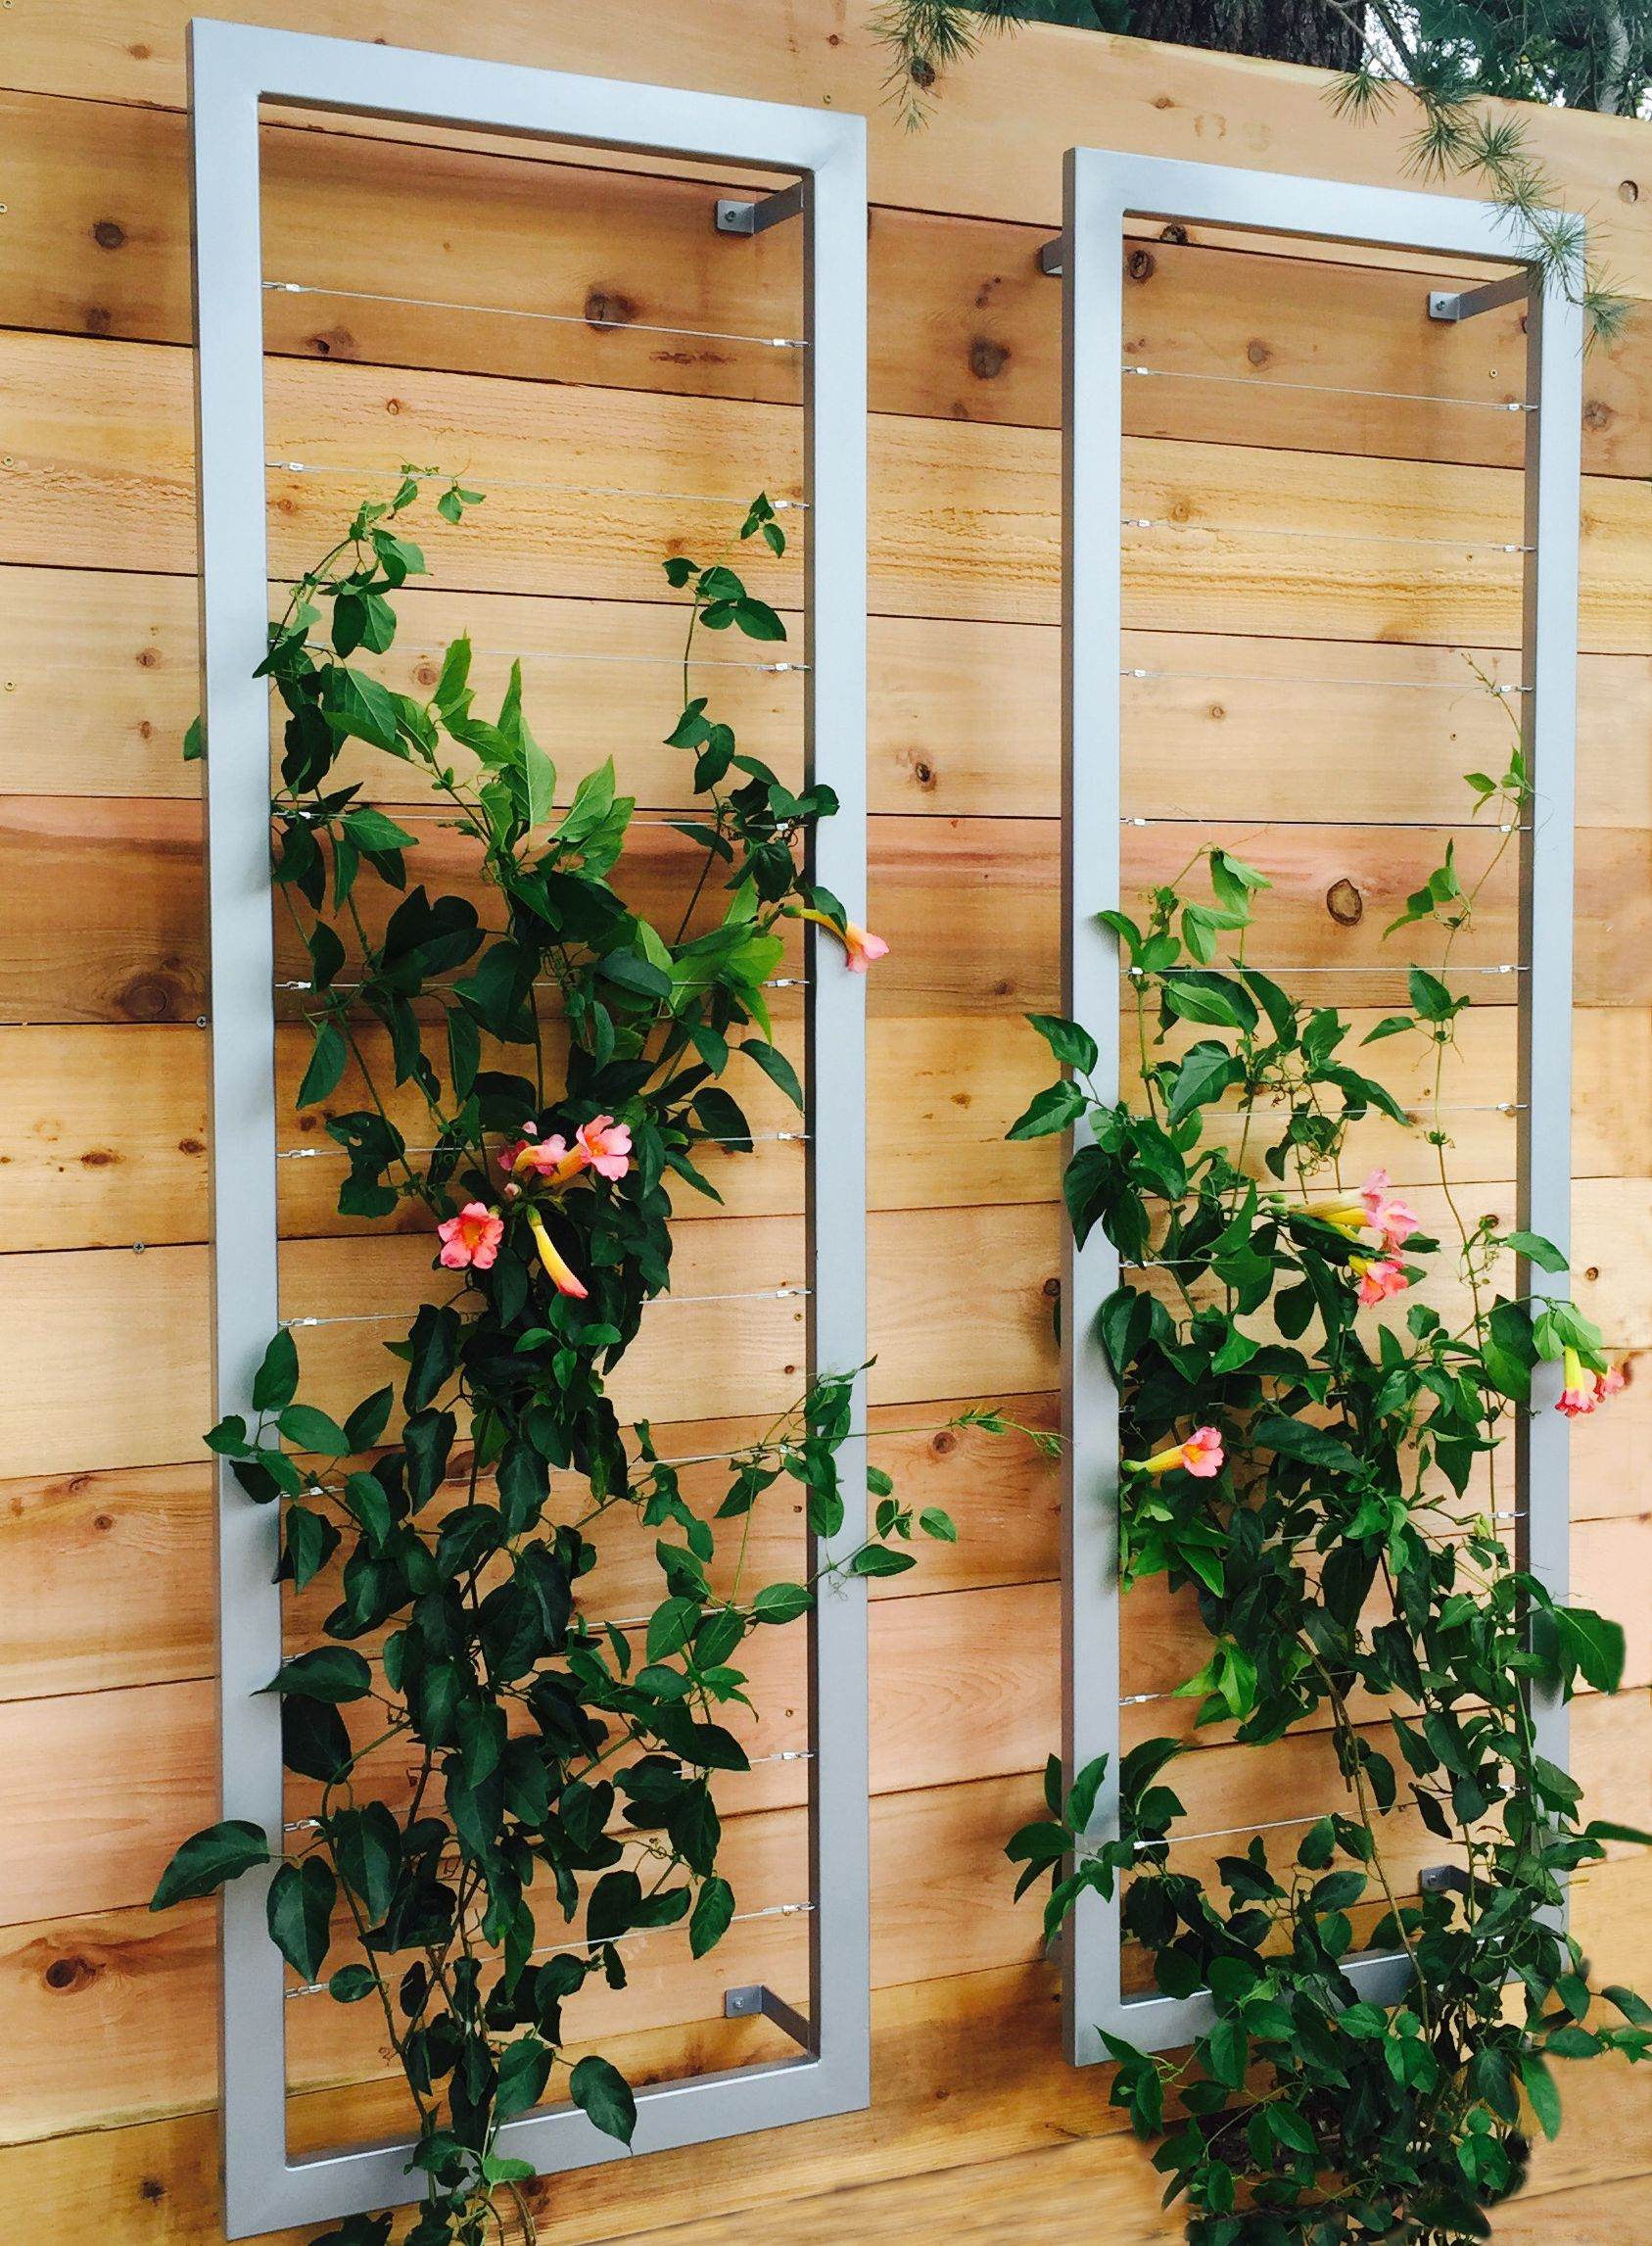 A Pair Of Ina Wall Trellises Create A Lovely Vertical Garden Tapestry Woven  With Beautiful Distictus/Trumpet Vines Against A Modern Garden Wall.